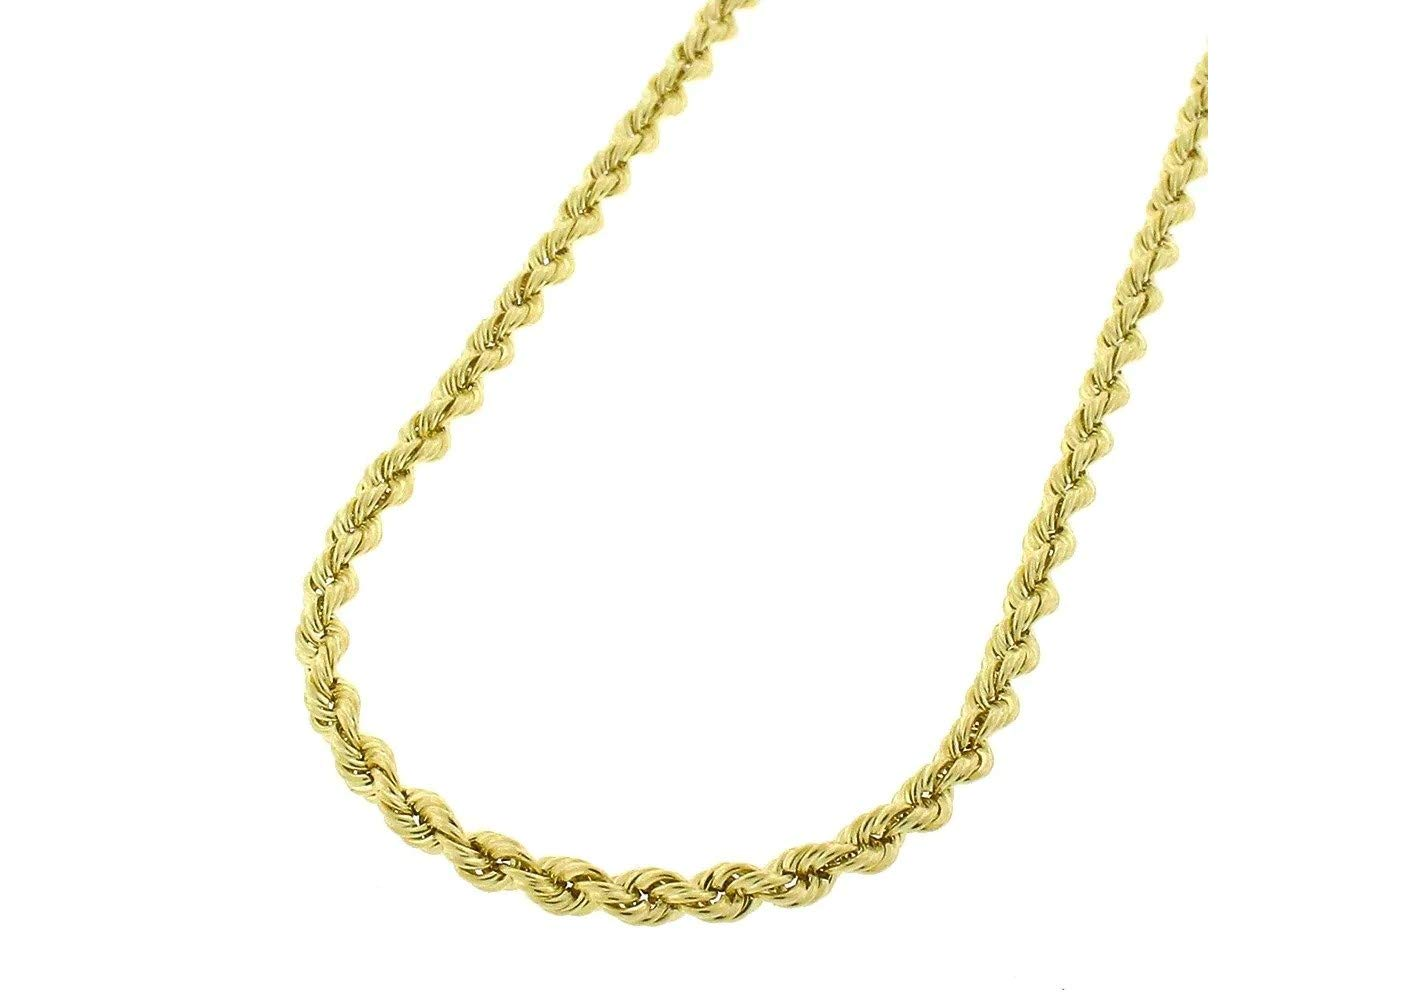 14K Gold 2.5MM 3MM 4MM Diamond Cut Rope Chain Necklace for Men and Women- Braided Twist Chain Necklace 14K Necklace, 14k Rope Chain, 14 Karat Gold Necklace 16-30 (20, 2.5MM)